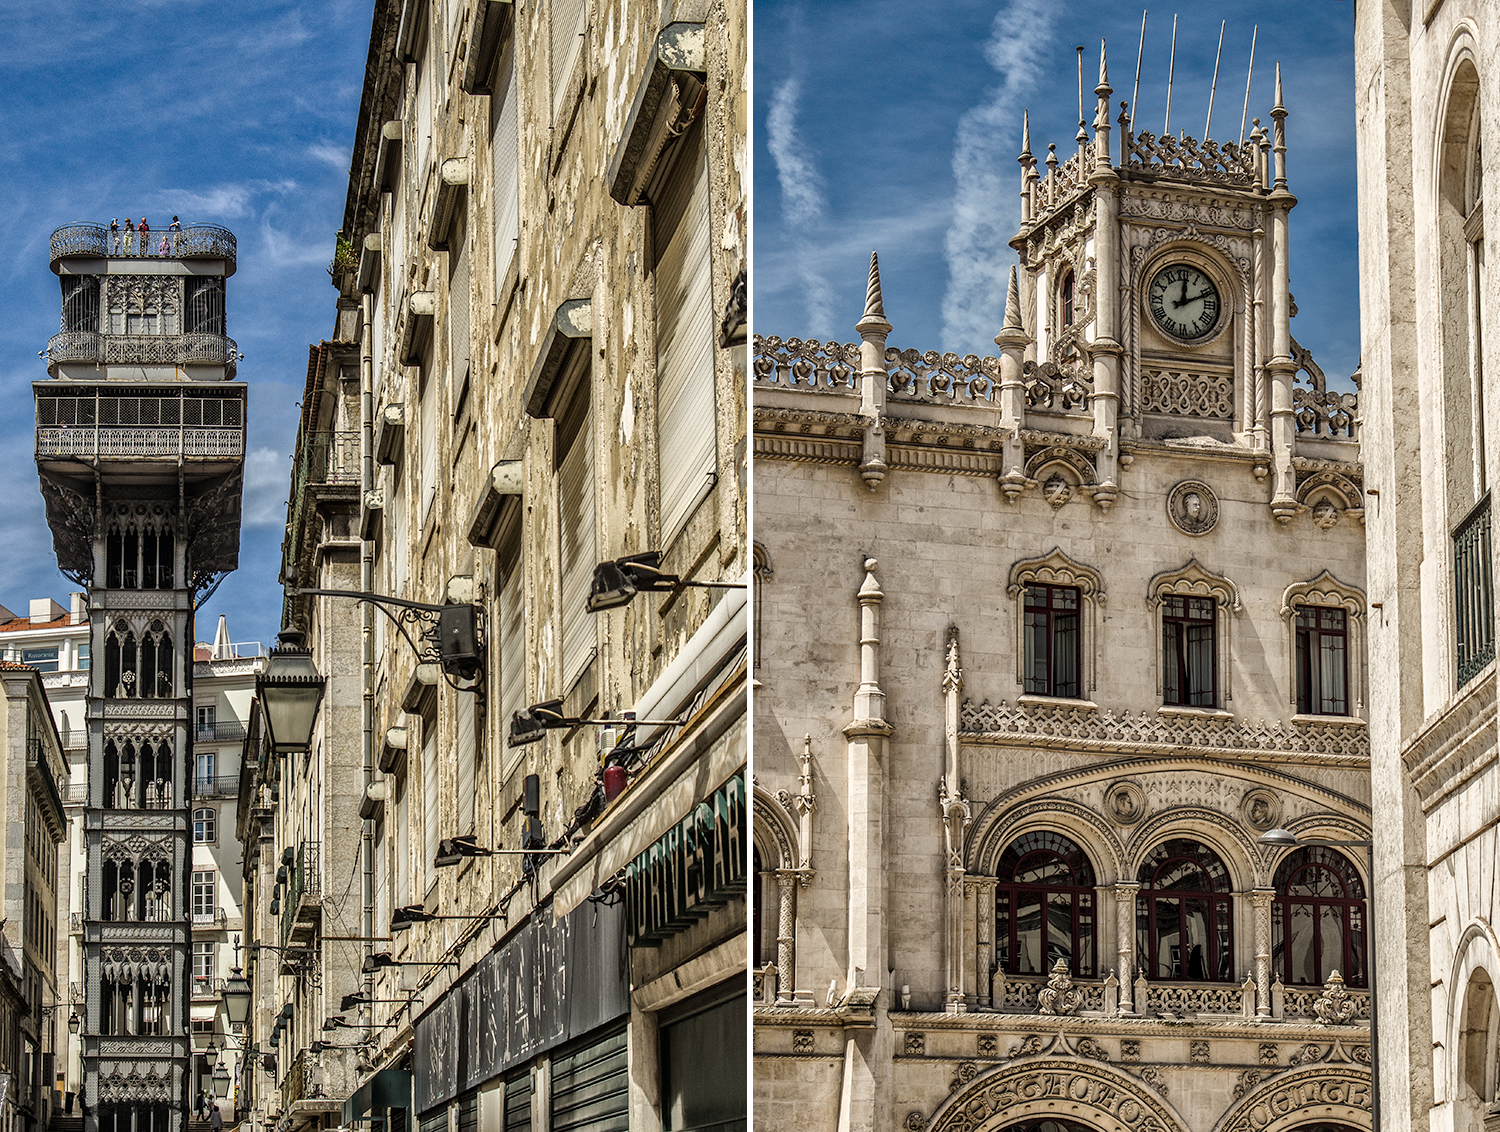 Lisbon sightseeing with Lisbon Photo Tour - Santa Justa Lift and Rossio's Train Station